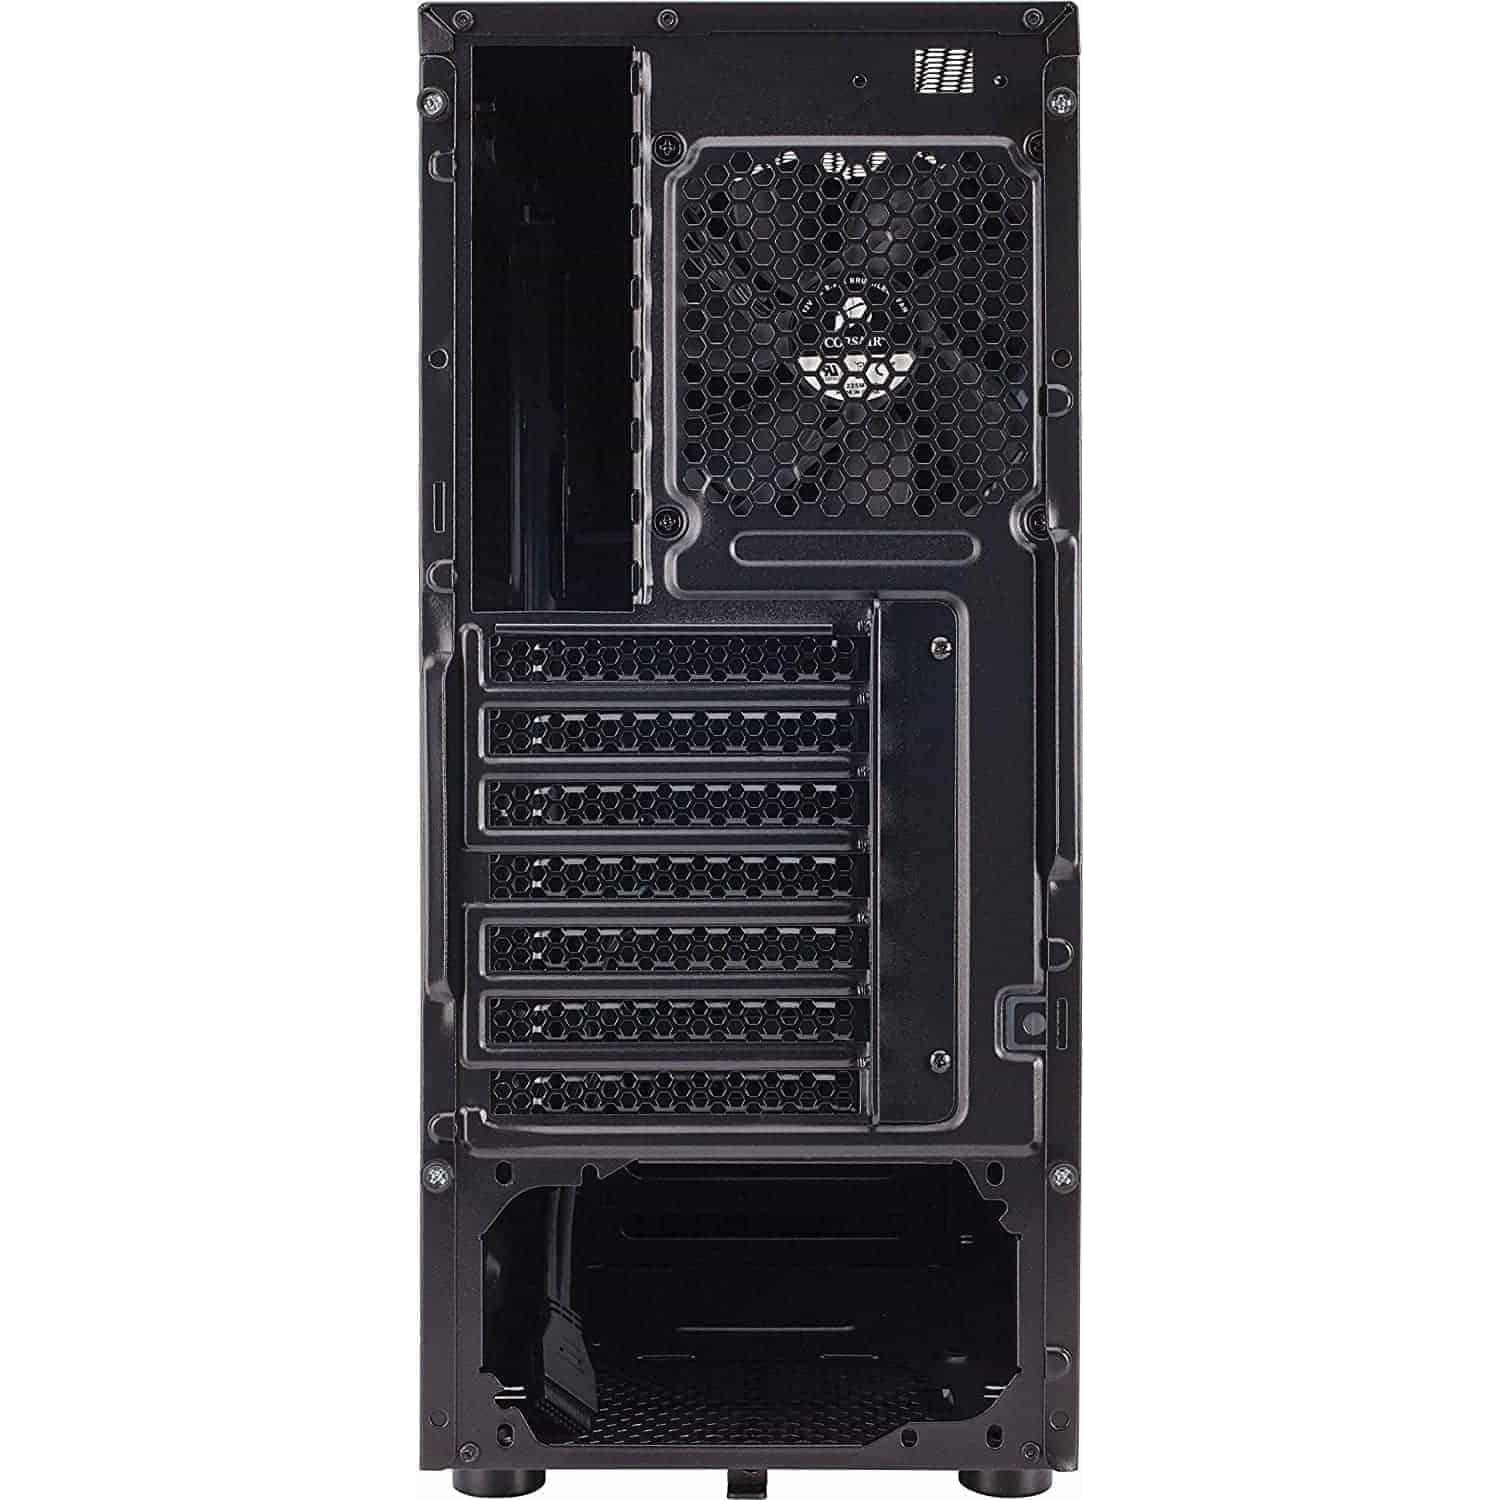 "Look no further than the Carbide Series™ 100R Mid Tower case. ... The Carbide Series 100R Mid Tower case has the versatility serious PC builders need with the clean, modern exterior design all users can agree with. ... Corsair Carbide Series mid-tower PC cases have the high-end features, Buy Corsair Carbide Series 100R CC-9011075-WW Black Steel ATX Mid Tower Computer Case ATX (not Included) Power Supply online at low price in India Kartmy.com, The Carbide Series 100R Mid Tower case has the versatility serious PC builders need with the clean, modern exterior design all users can agree with. Tool-free , CORSAIR CARBIDE 100R Mid-Tower Case, Buy Corsair Carbide Series 100R Mid-Tower Case (CC-9011075-WW) at lowest price in india at kartmy.com, Buy Corsair CC-9011075-WW Carbide Series 100R Black Steel ATX Mid Tower Computer Case with fast shipping and top-rated customer service, Elegant and modern on the outside, with all the features a serious PC builder needs on the inside. The Carbide Series 100R Mid Tower case has the versatility serious PC builders need with the clean, modern exterior design all users can agree with. Tool-free access to the interior, a flush-mounted window for admiring your components, and a range of cooling options are all available to the home builder at a spectacular value with this latest addition to the Corsair family. Simple, elegant, and sharp. It's the performance PC platform in stealth mode. With a mesh-free front panel, flush-mounted side panel window and clean lines, the 100R is both professional enough for the office and customizable enough for any home PC build. Storage, simplified. The simplicity begins with tool-free 3.5"" and 5.25"" drive installation, and all four hard drive trays provide solid-state drive support so you can mix and match to fit your needs. On the outside, dual USB 3.0 front panel ports give you quick and easy access to the latest high-speed portable hard drives and flash drives. Creative cooling Five internal fan mounts let you customize your cooling to match your build. We'll get you started with one included 120mm fan. The case is designed to draw airflow directly to the GPU to help ensure that you and your graphics card will both keep your cool during intense gaming sessions. The features that builders want Whether you're building one system or a dozen, you want the attention to detail that makes it easy. You'll appreciate things like cable routing channels for easy cable organization and better-looking builds, and the side panels are attached with thumbscrews so you can get in and out without hunting for a screwdriver. About Carbide Series PC Cases Corsair Carbide Series mid-tower PC cases have the high-end features you need, and nothing you don't. Designed to be the foundation of awesome yet approachable gaming PCs, they combine the latest technology and ergonomic innovations with lots of room to build and expand, and amazing cooling potential."